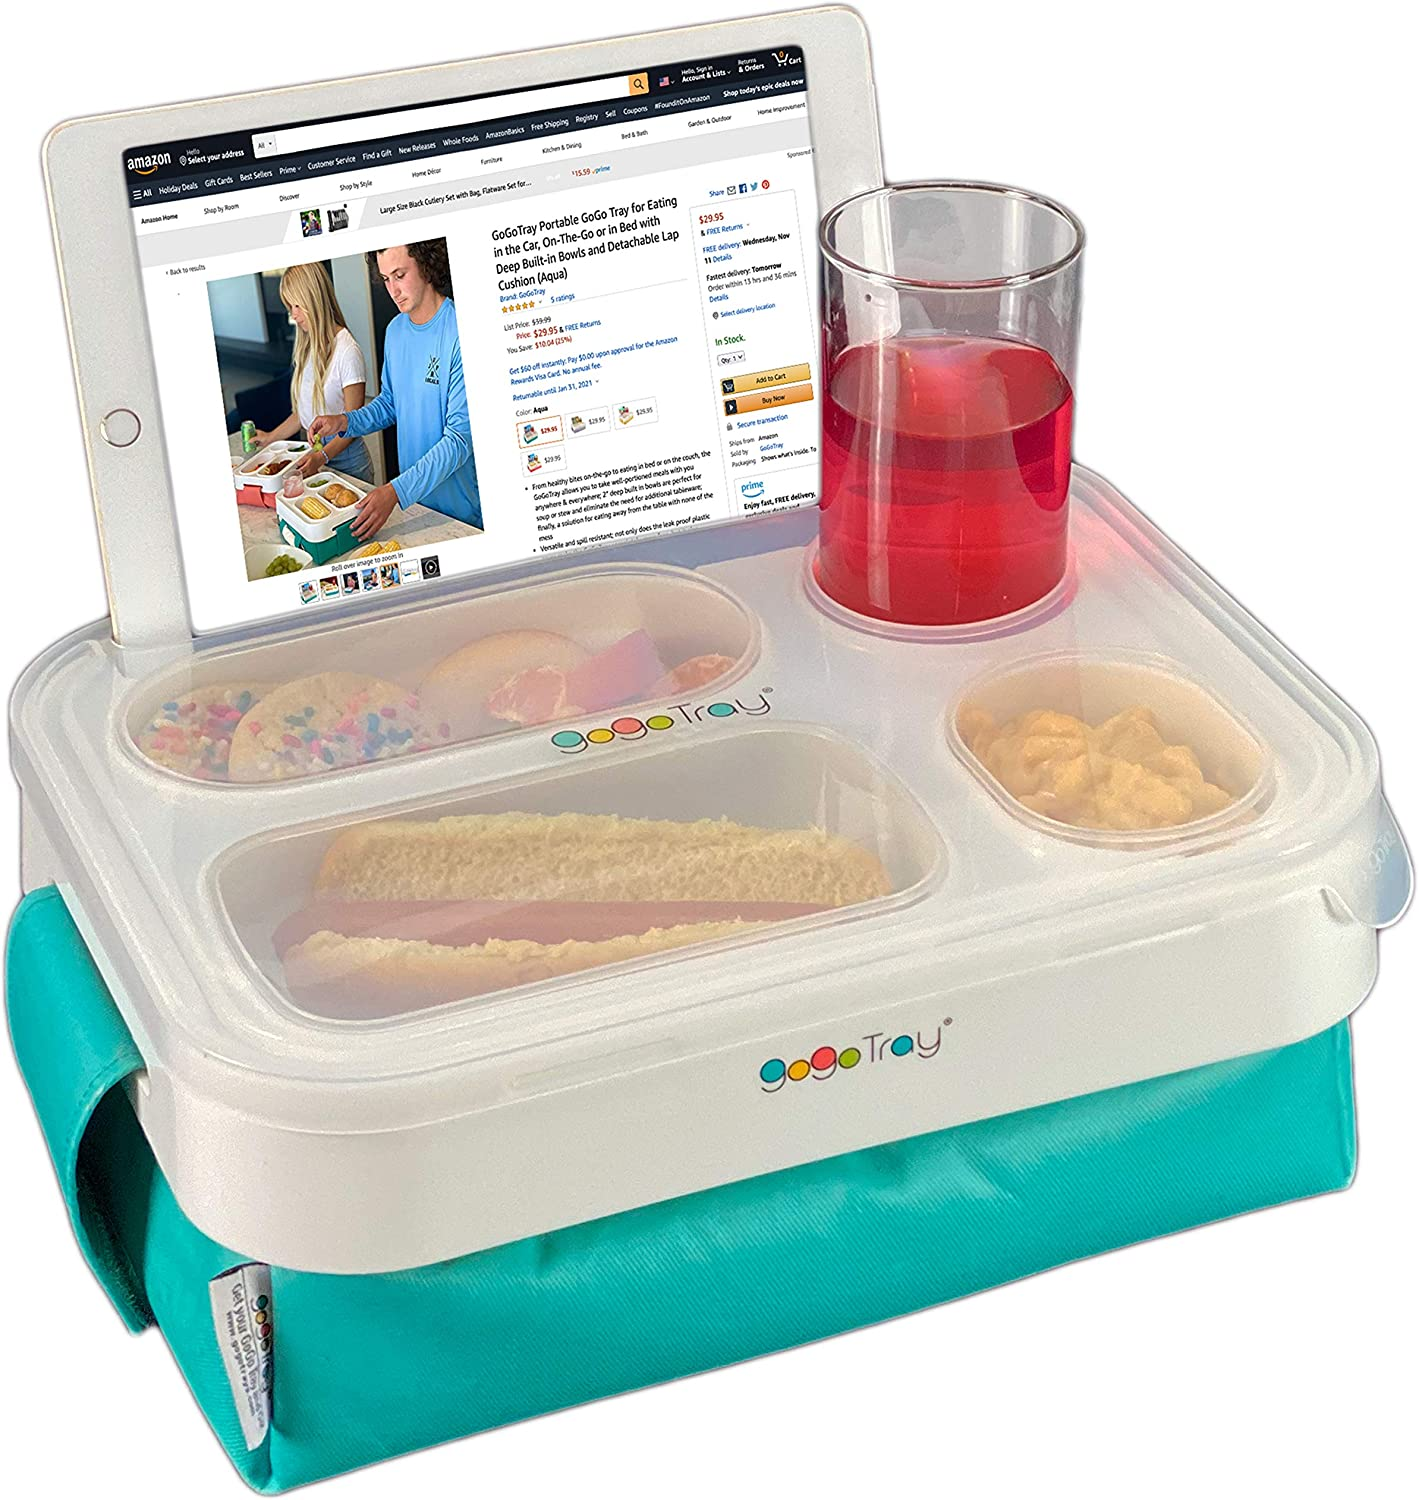 GoGoTray Portable GoGo Tray for Eating in the Car, On-The-Go or in Bed with Deep Built-in Bowls and Detachable Lap Cushion (Aqua)